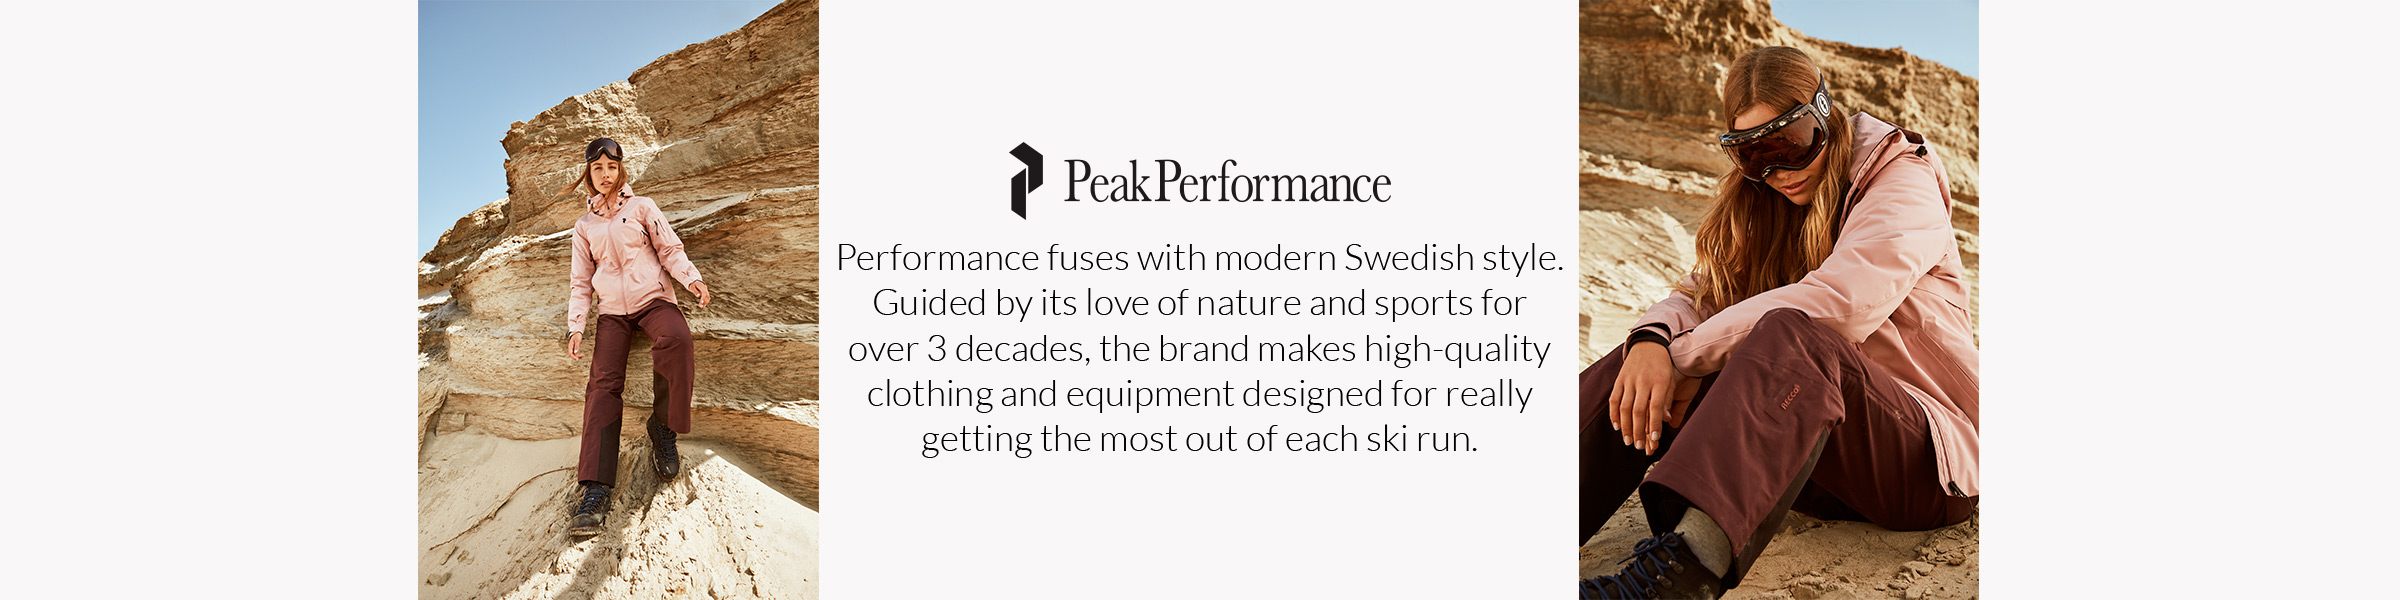 030730 Peak Performance